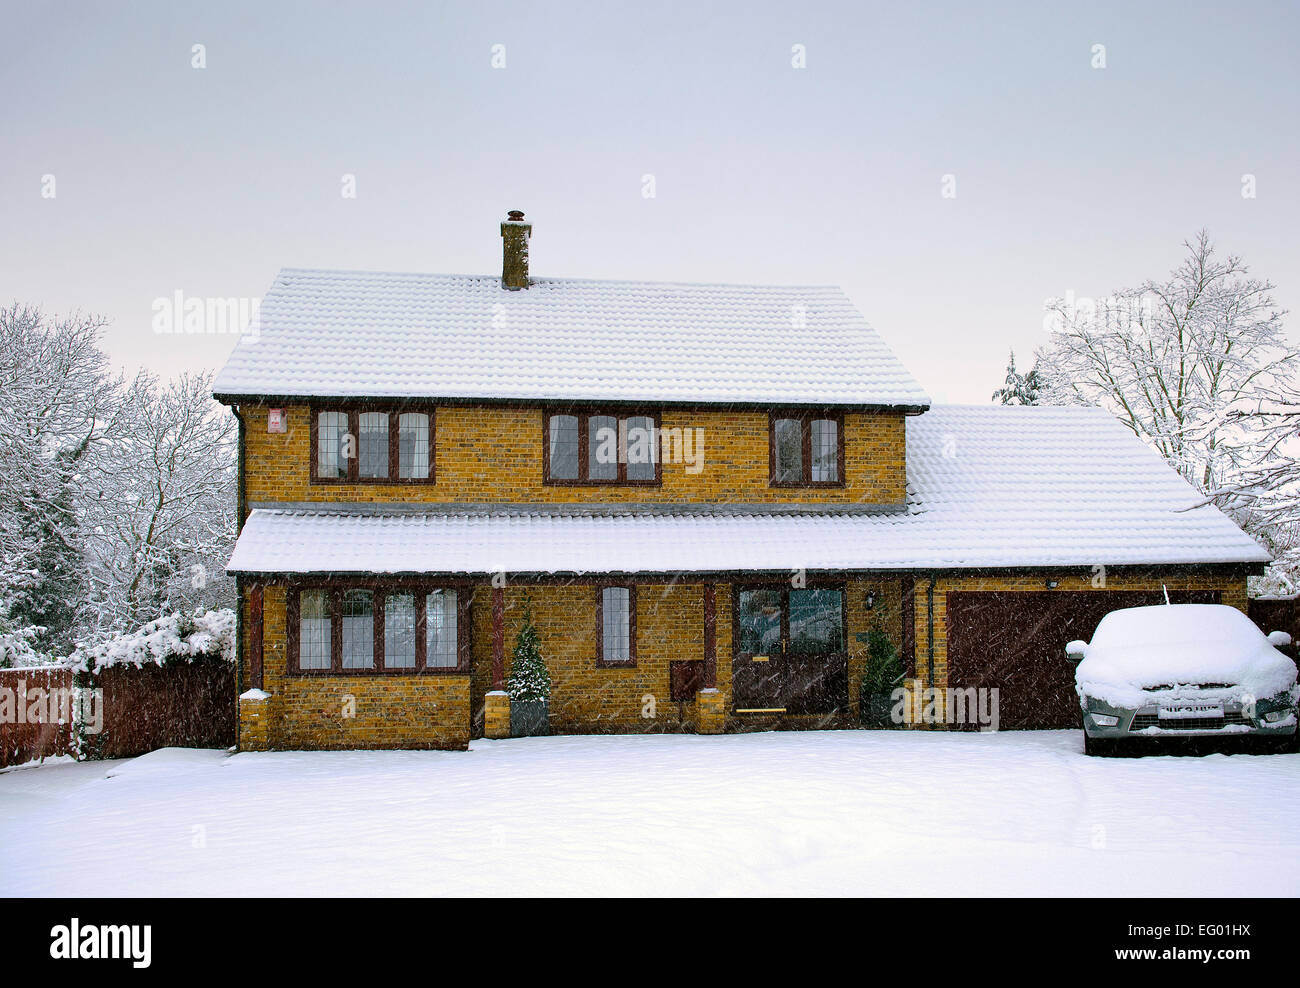 Day time image of large executive style detached house covered in snow Stock Photo